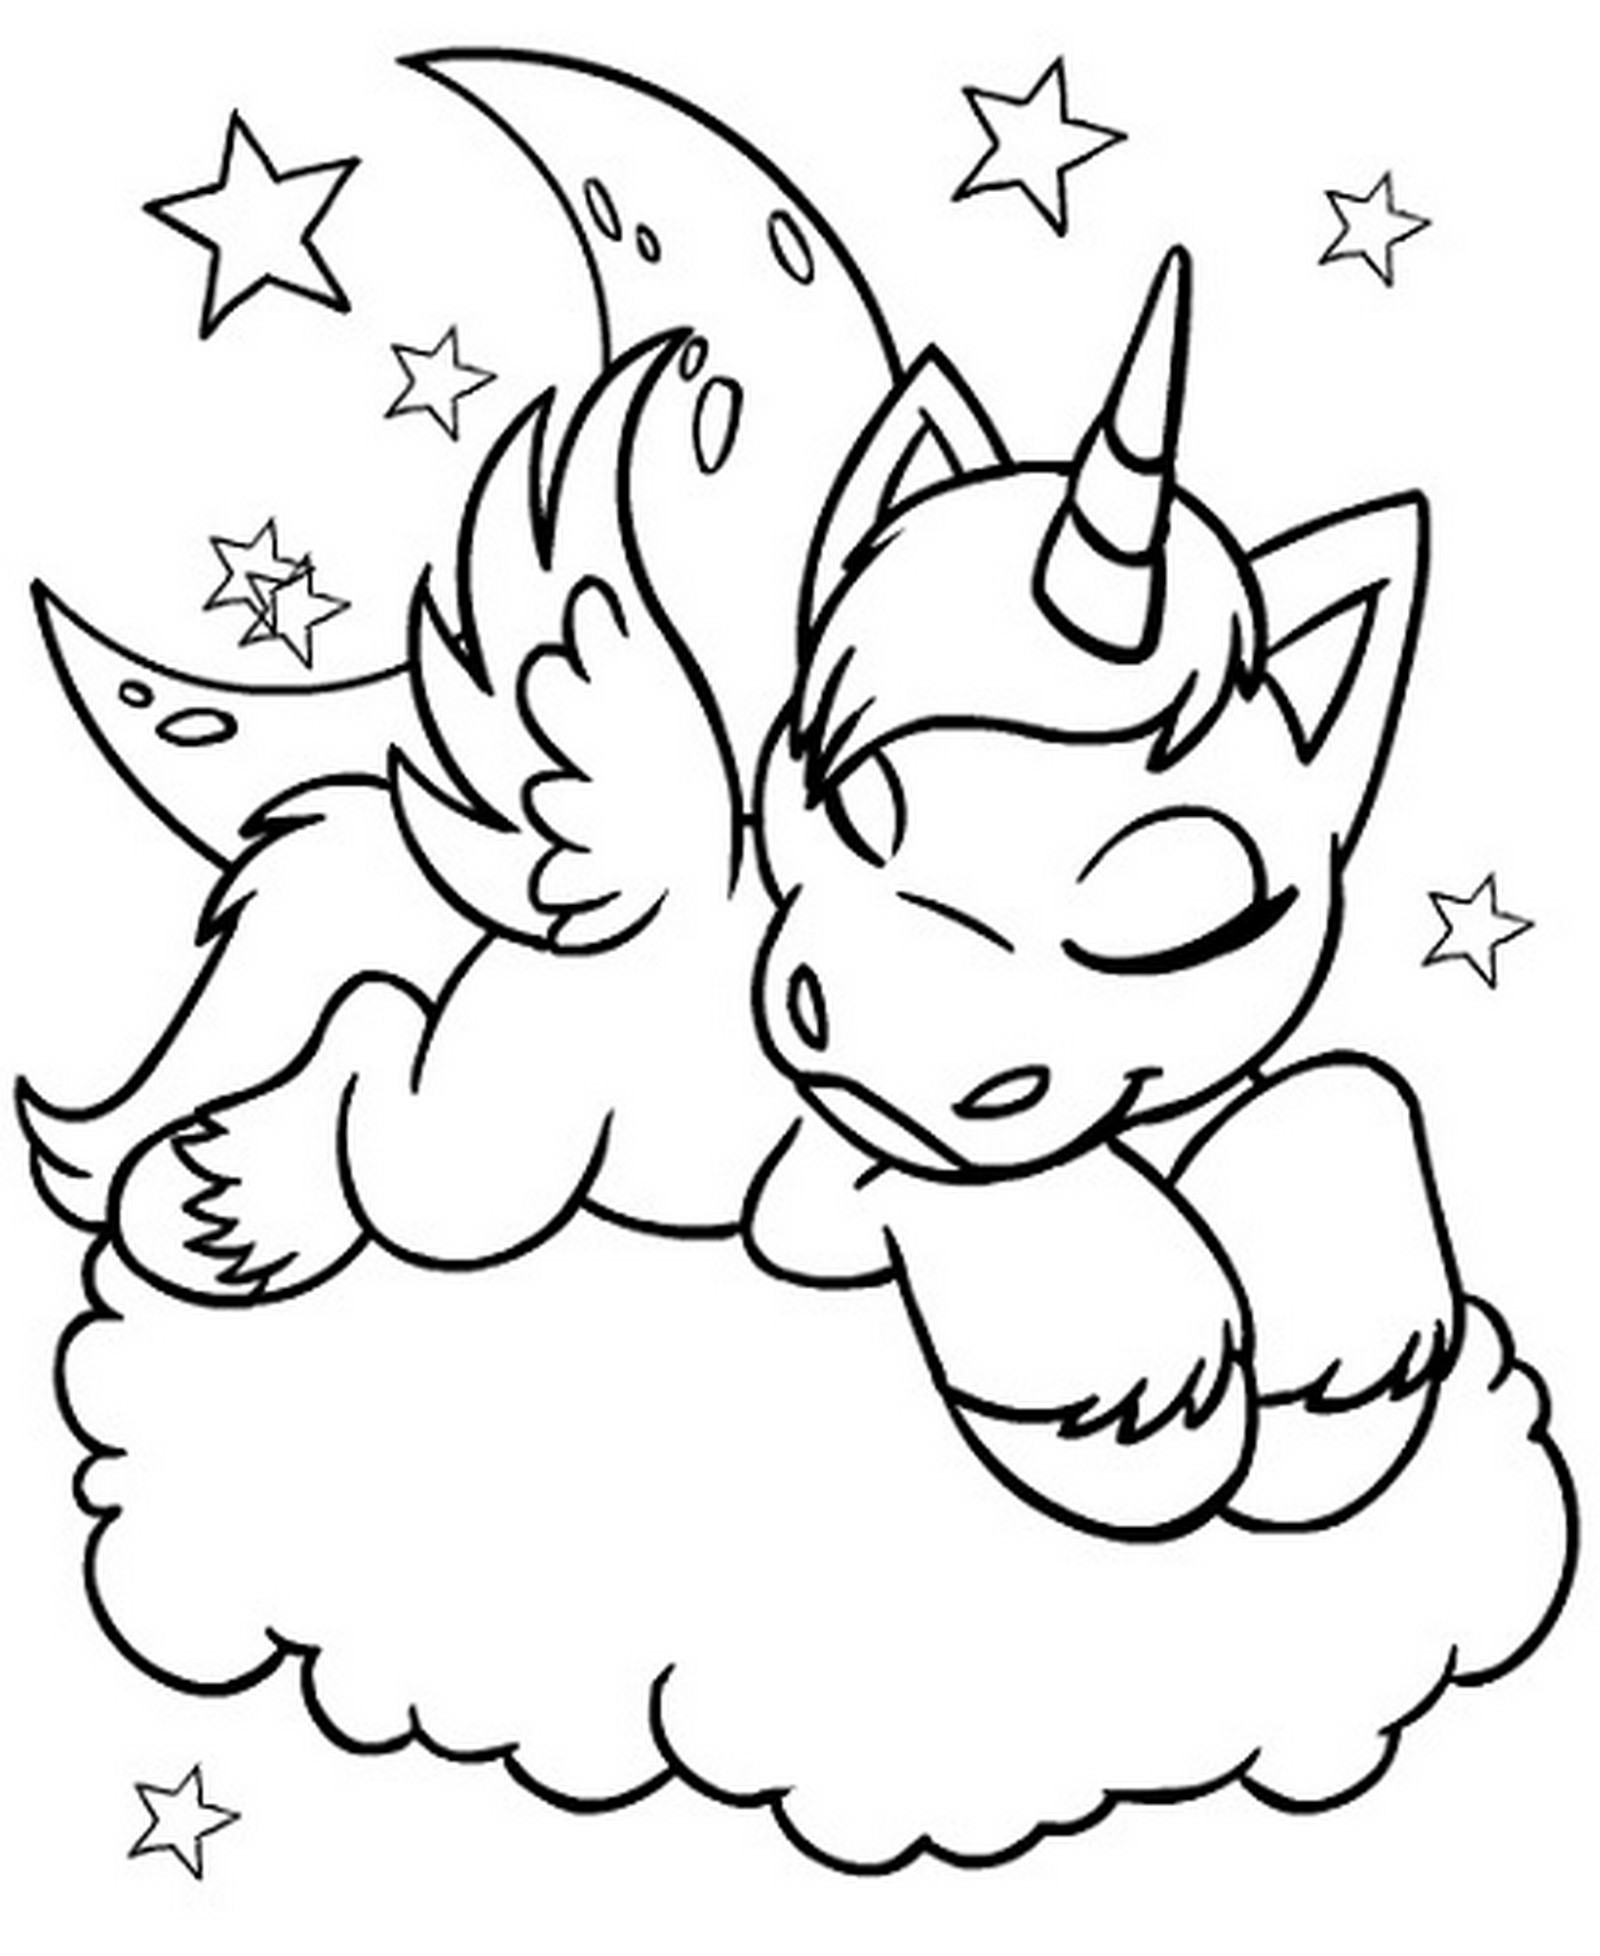 a unicorn coloring sheet adorable unicorn coloring pages for girls and adults updated unicorn a coloring sheet